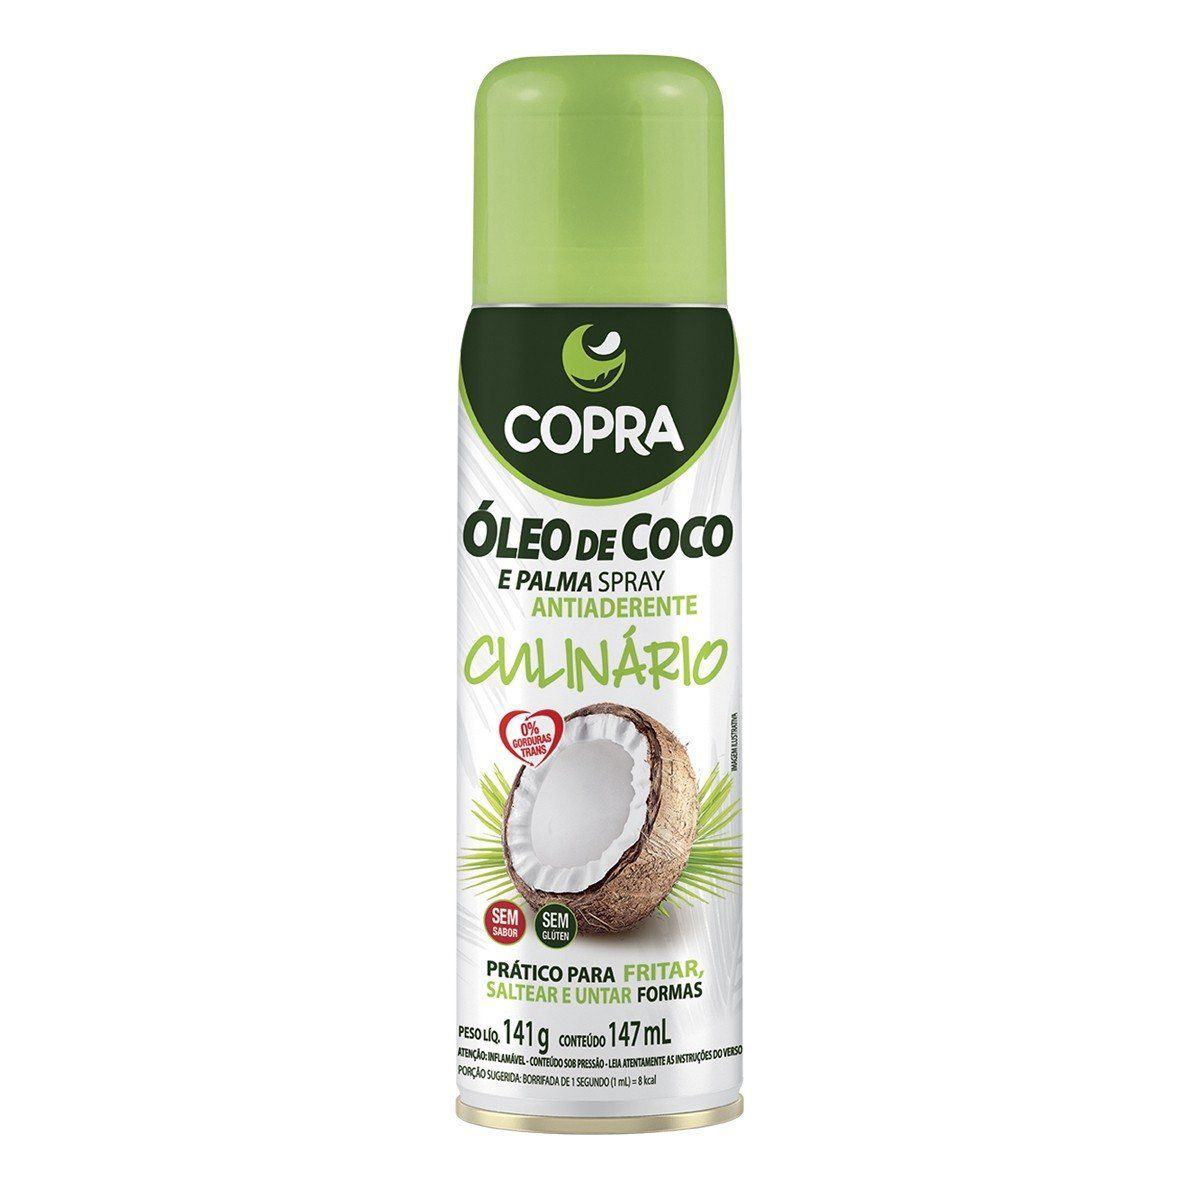 Oleo de Coco e Palma em Spray 200ml - Copra